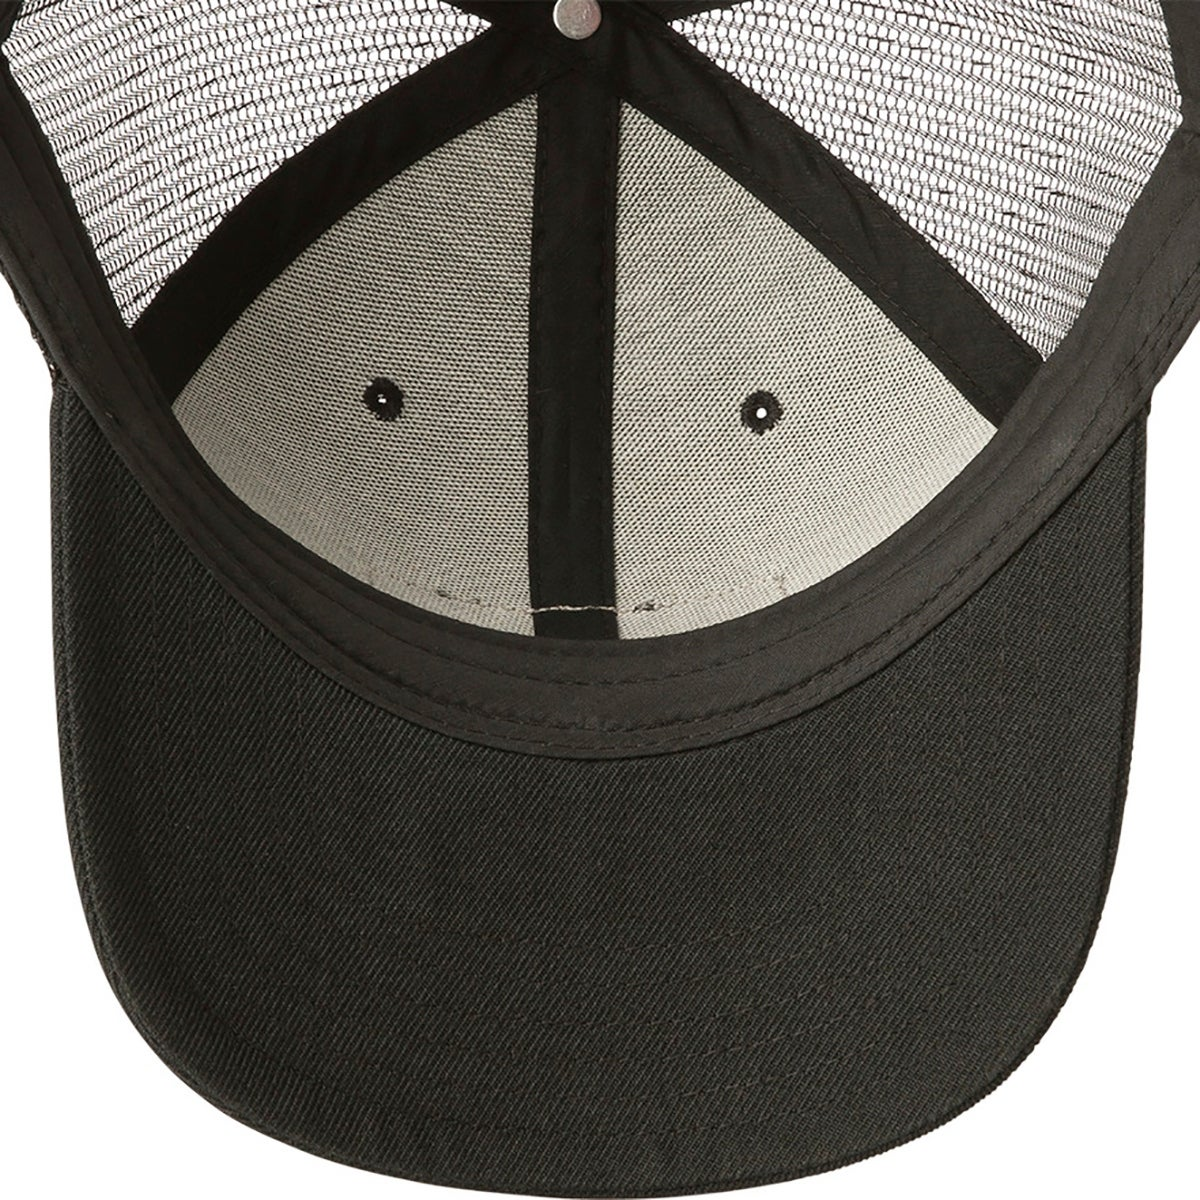 innovative design 14a1d 2c3ea Shop RVCA Reno Adjustable Mid-Fit Mesh-Back Trucker Hat - Free Shipping On  Orders Over  45 - Overstock - 20091349